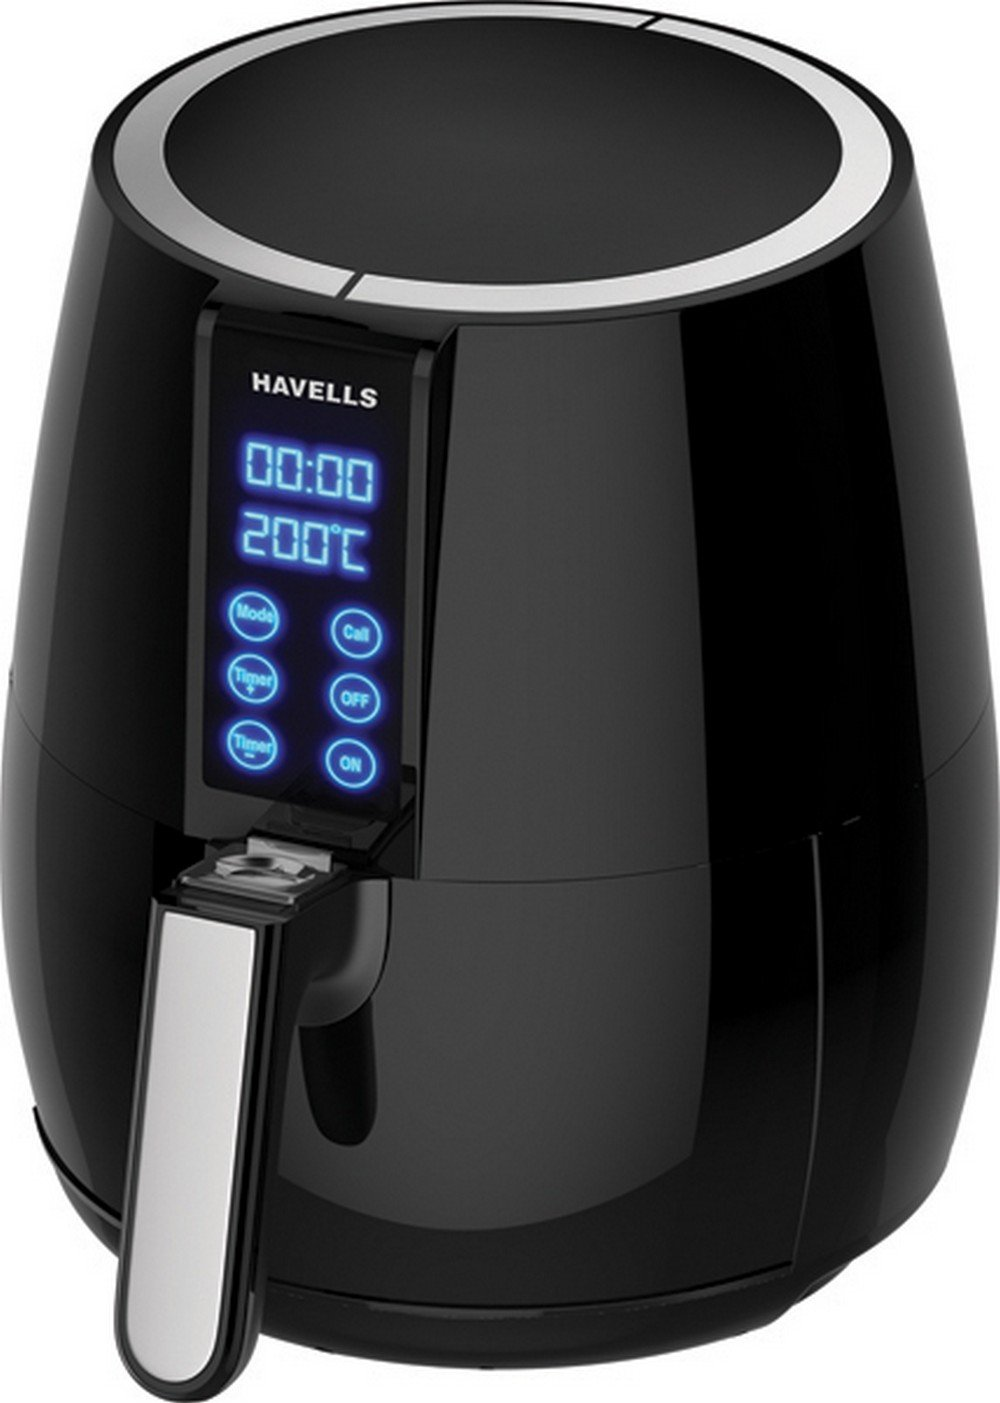 2. Havells Prolife Digital 1230-Watt Air Fryer